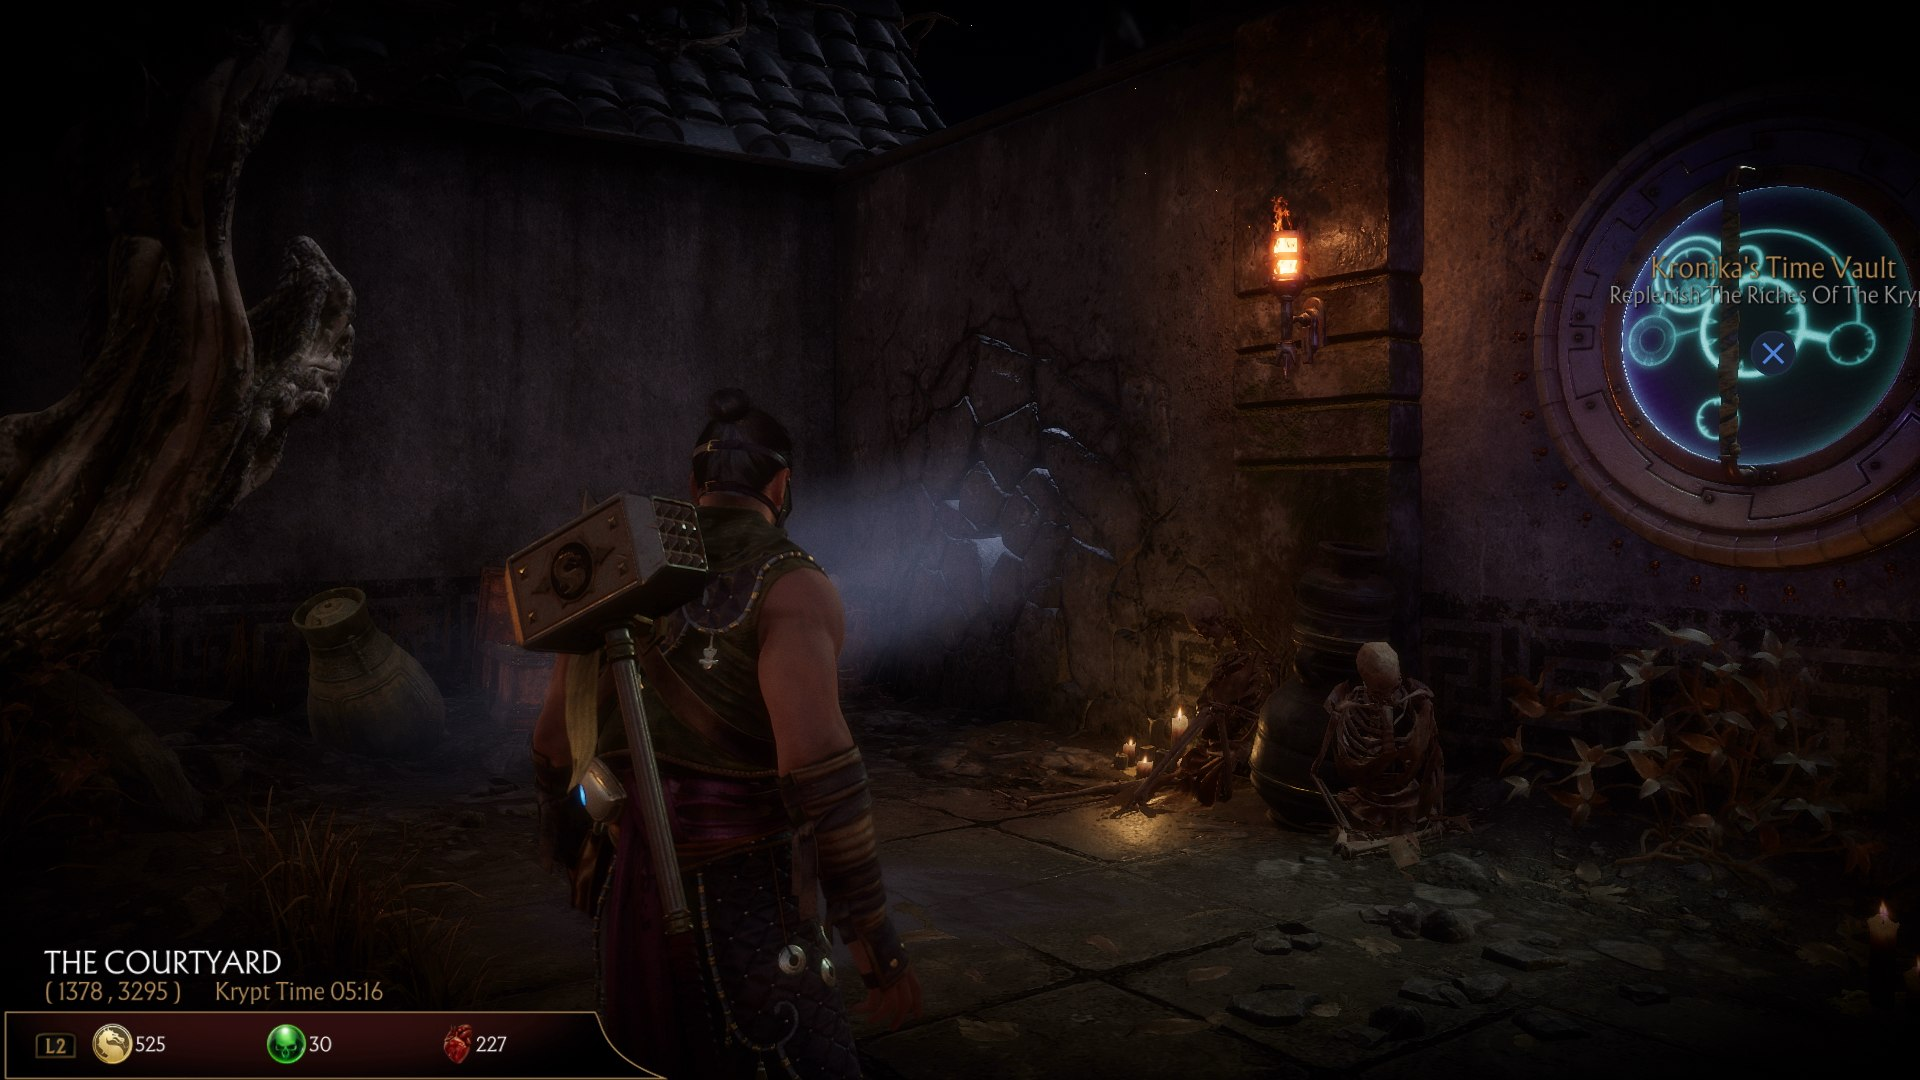 Mortal Kombat 11 Forge Recipes - Every Krypt Forge Recipe in